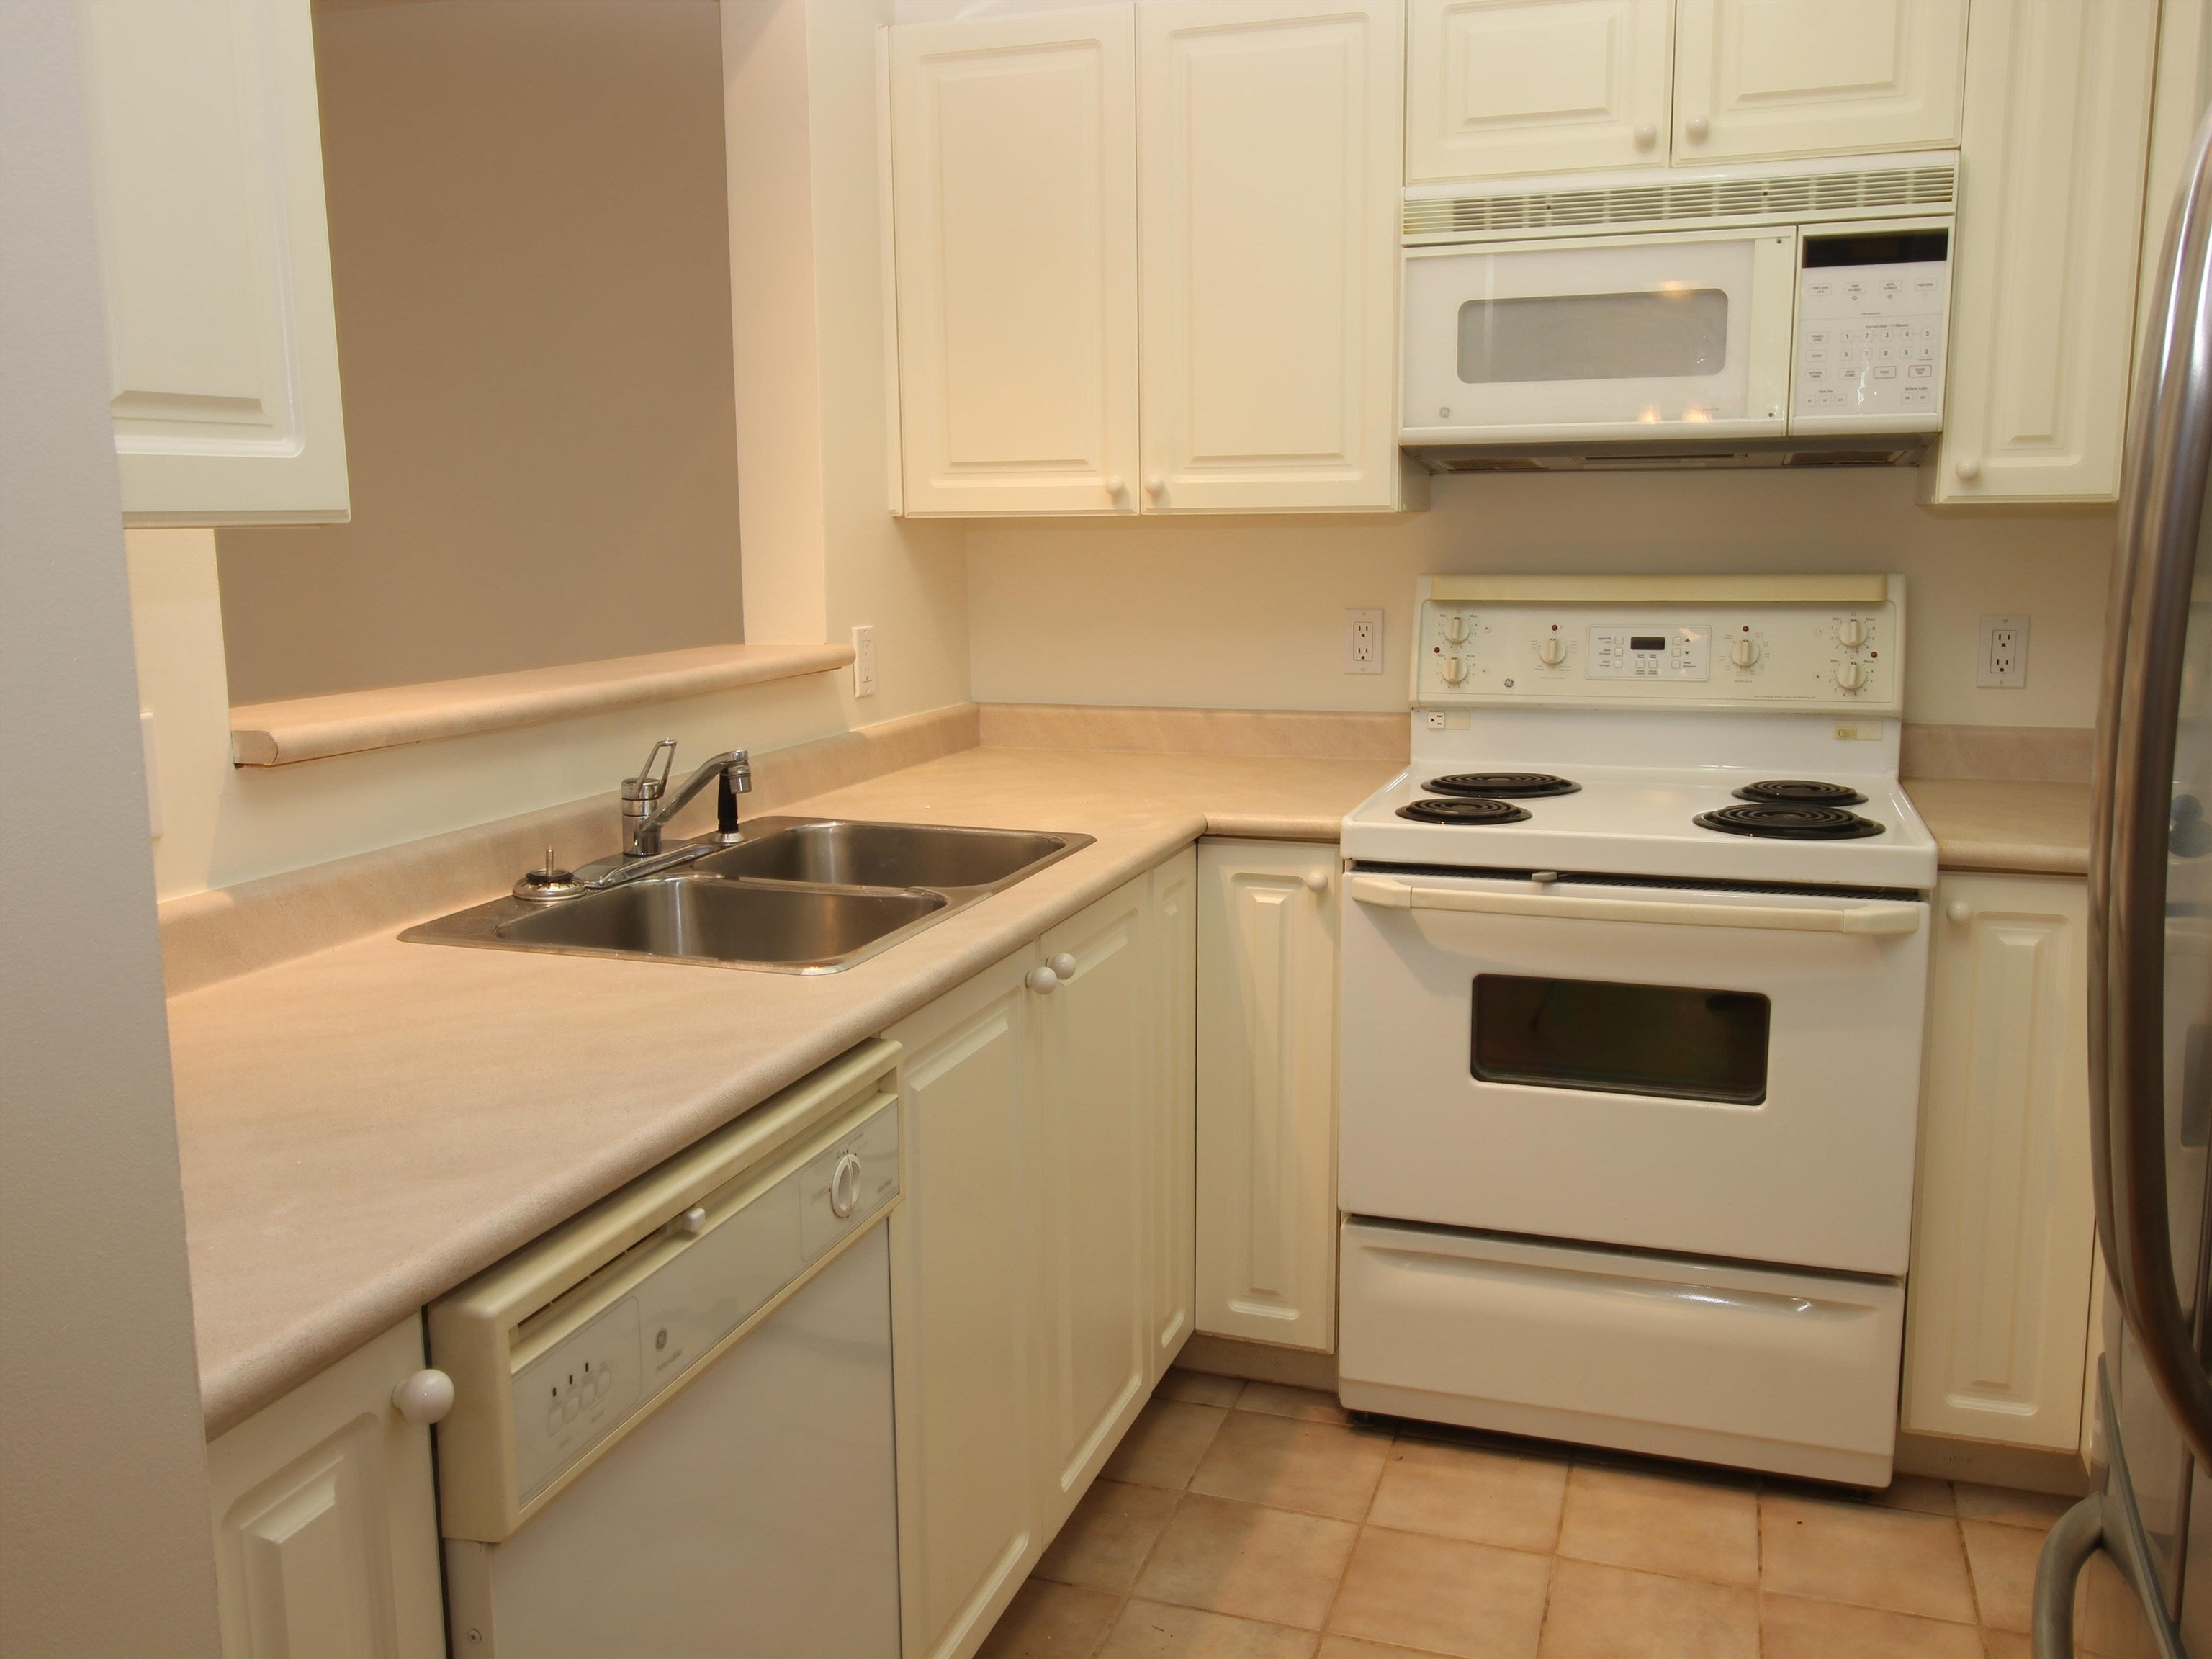 307 2059 CHESTERFIELD AVENUE - Central Lonsdale Apartment/Condo for sale, 1 Bedroom (R2618308) - #6